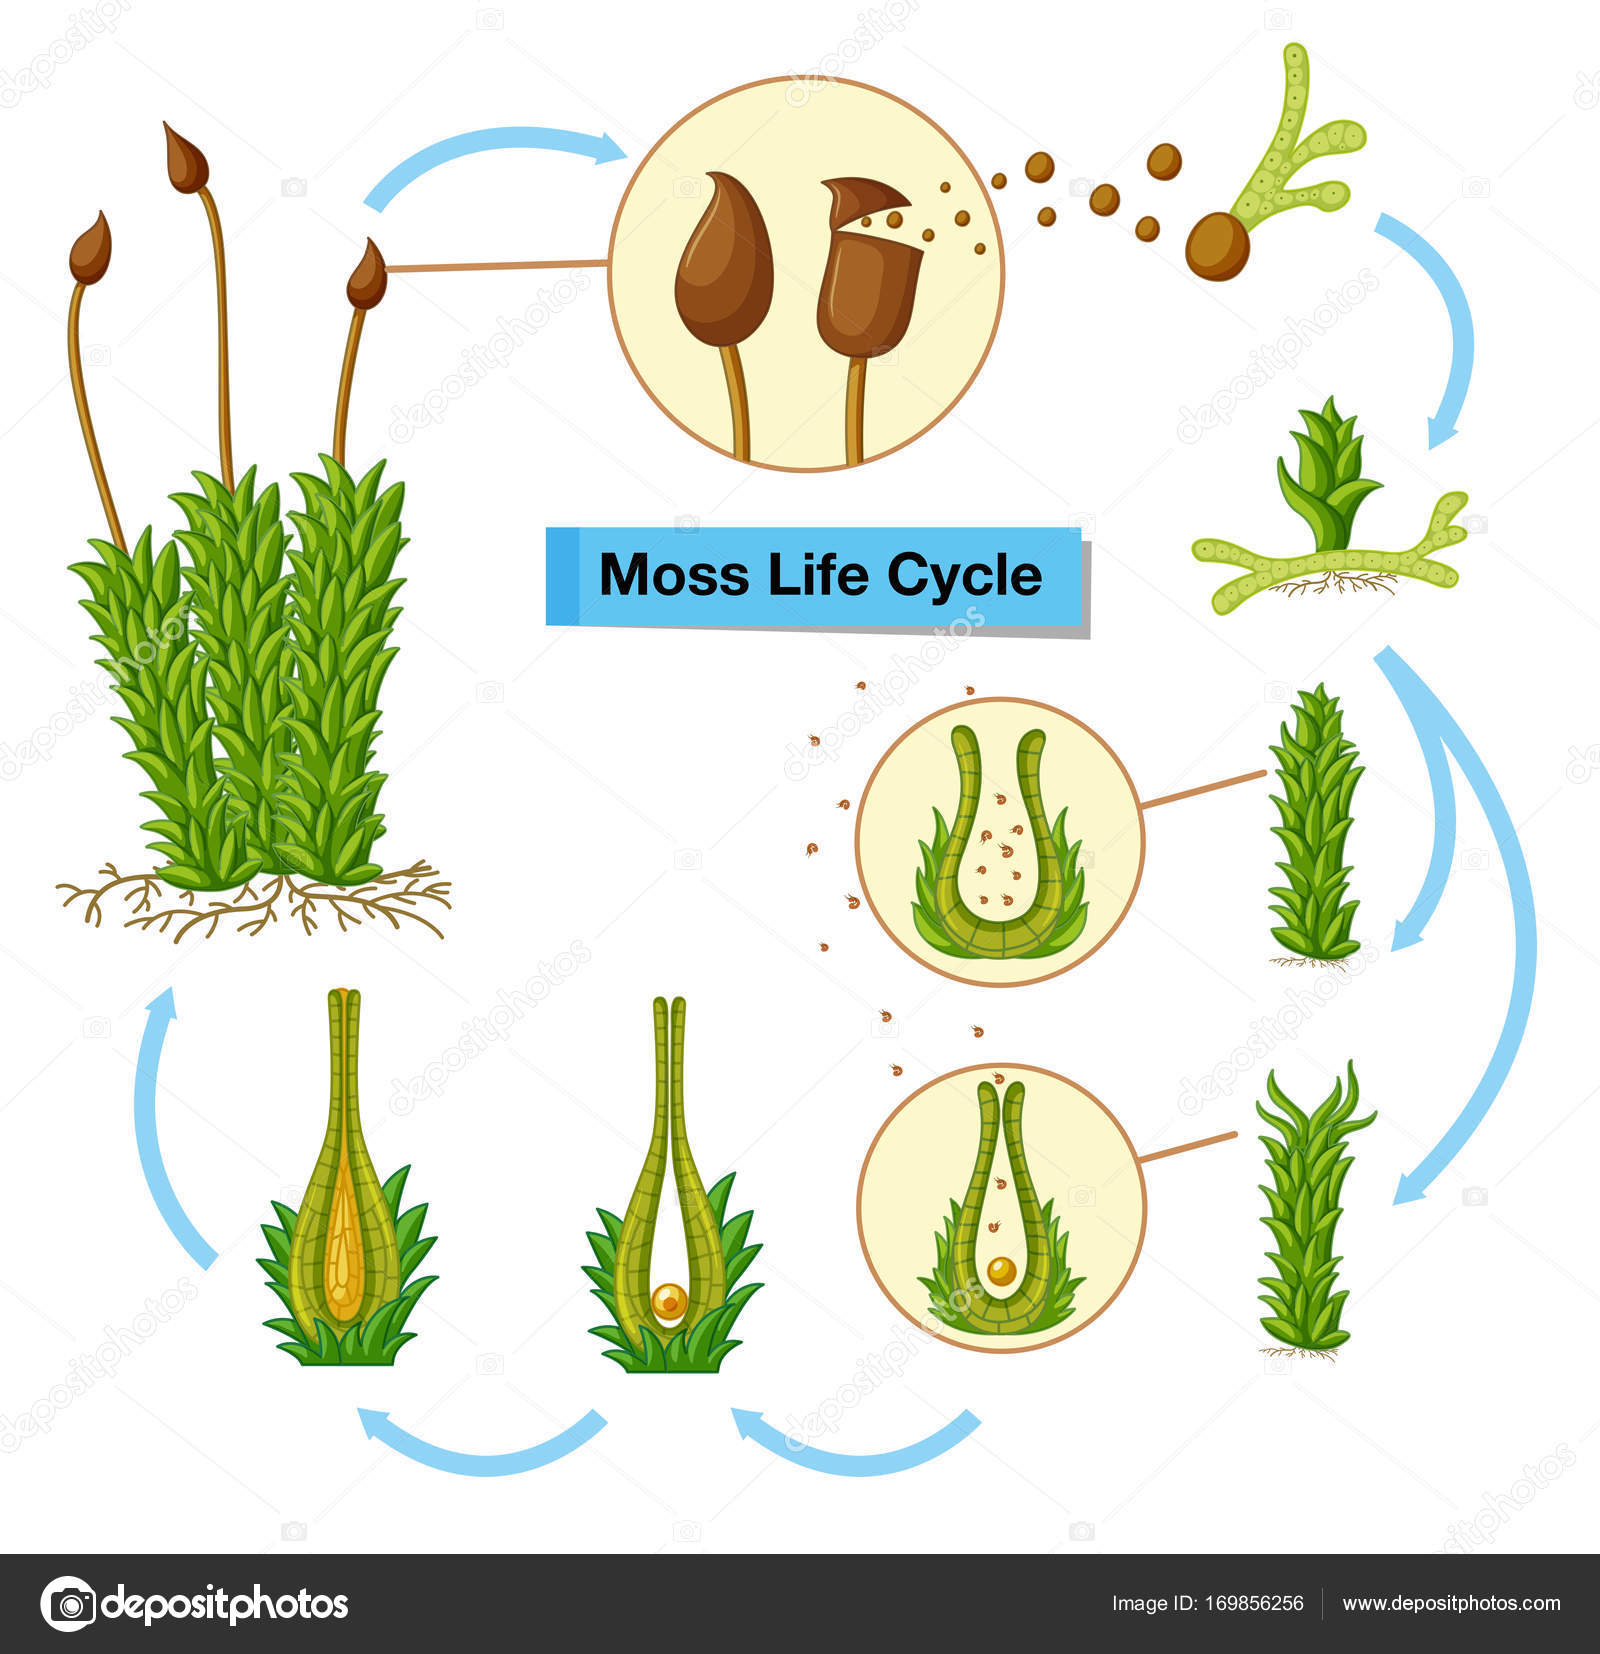 hight resolution of diagram showing moss life cycle illustration vector by interactimages